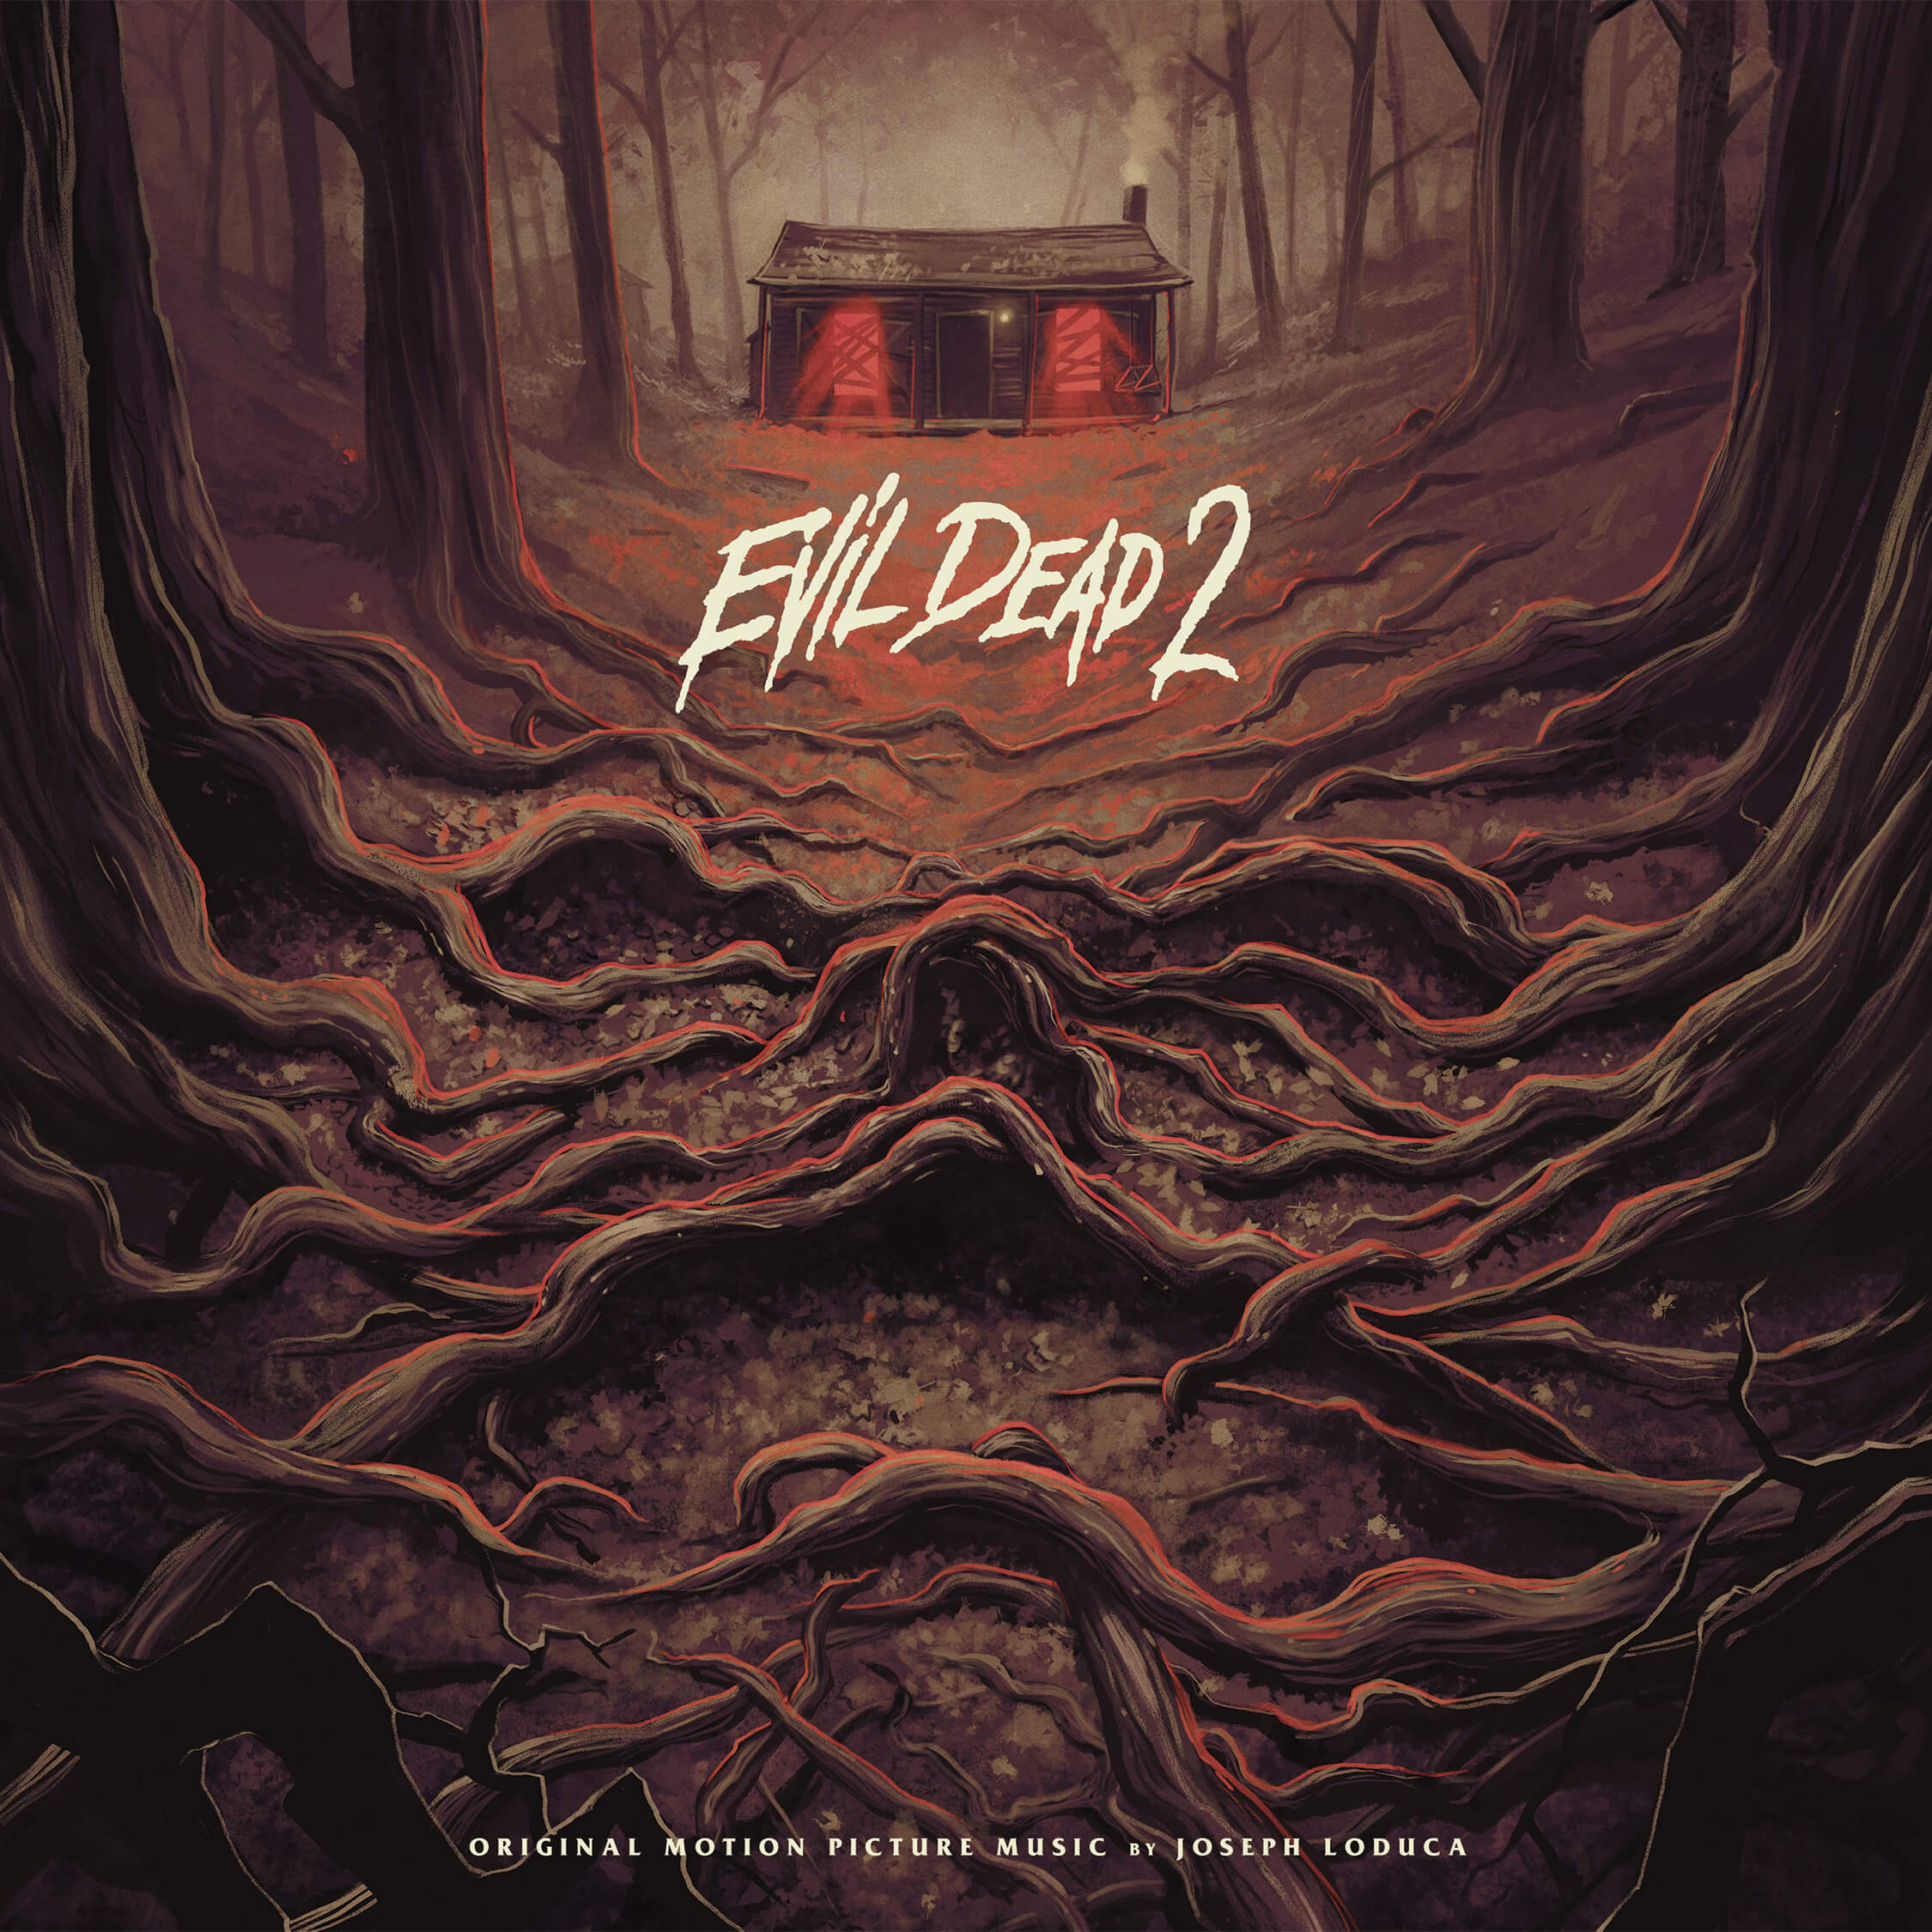 Waxwork Releases Evil Dead 2 Pressing Up For Sale Now